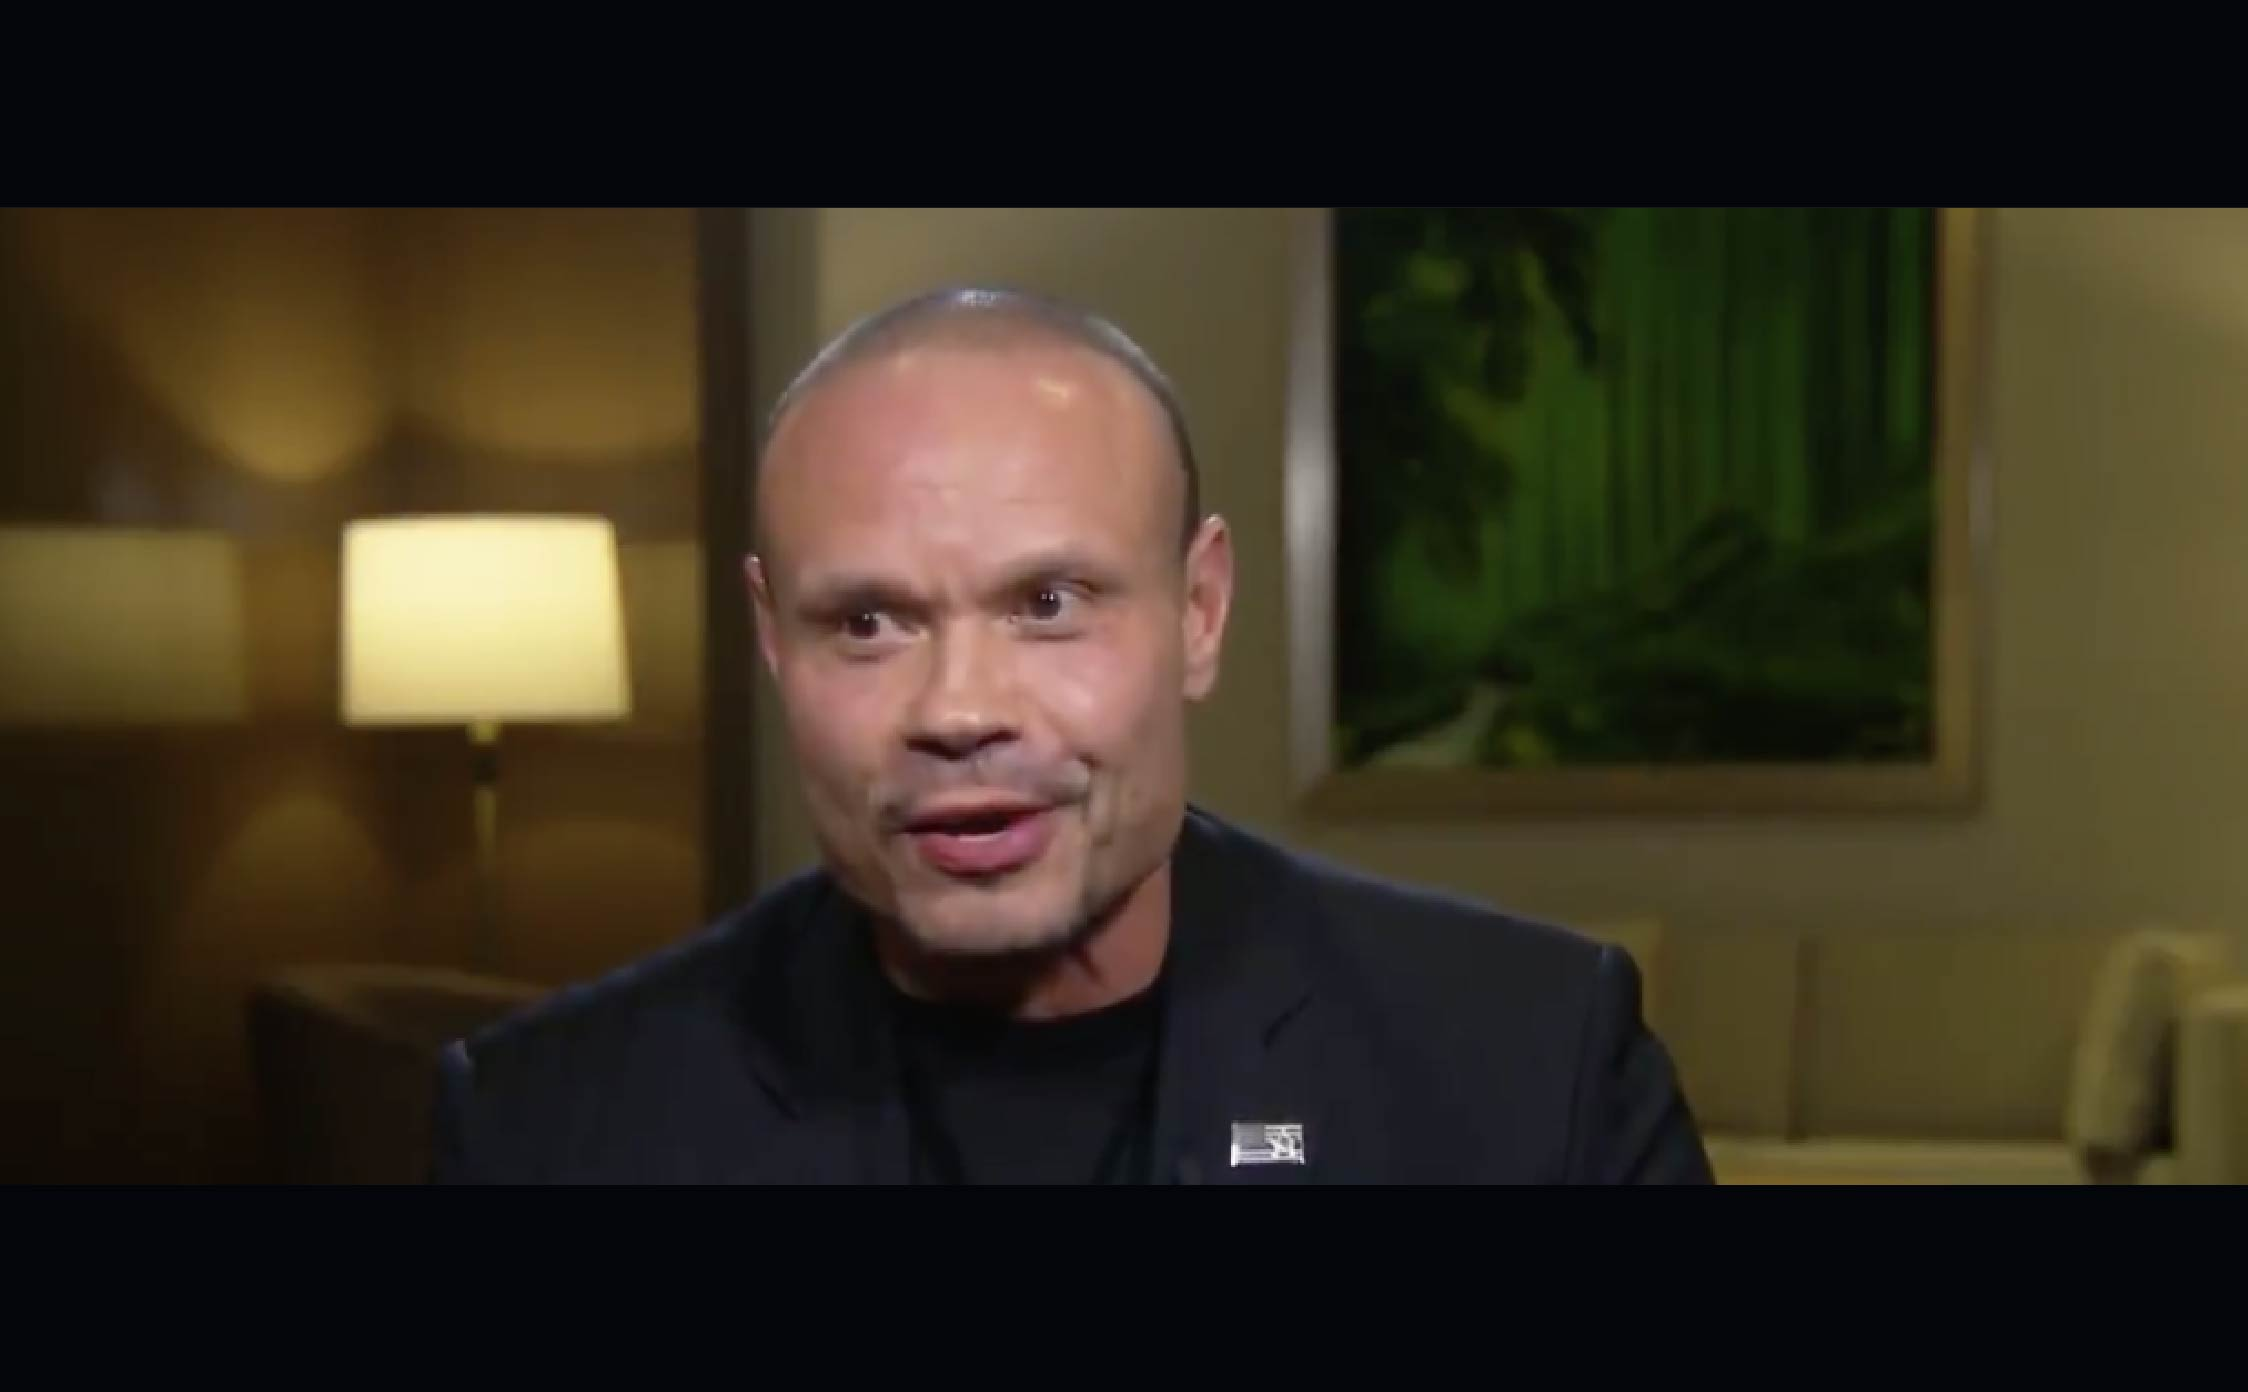 [VIDEO] All It Took Was 20-Short-Seconds For Dan Bongino to Change The Game...